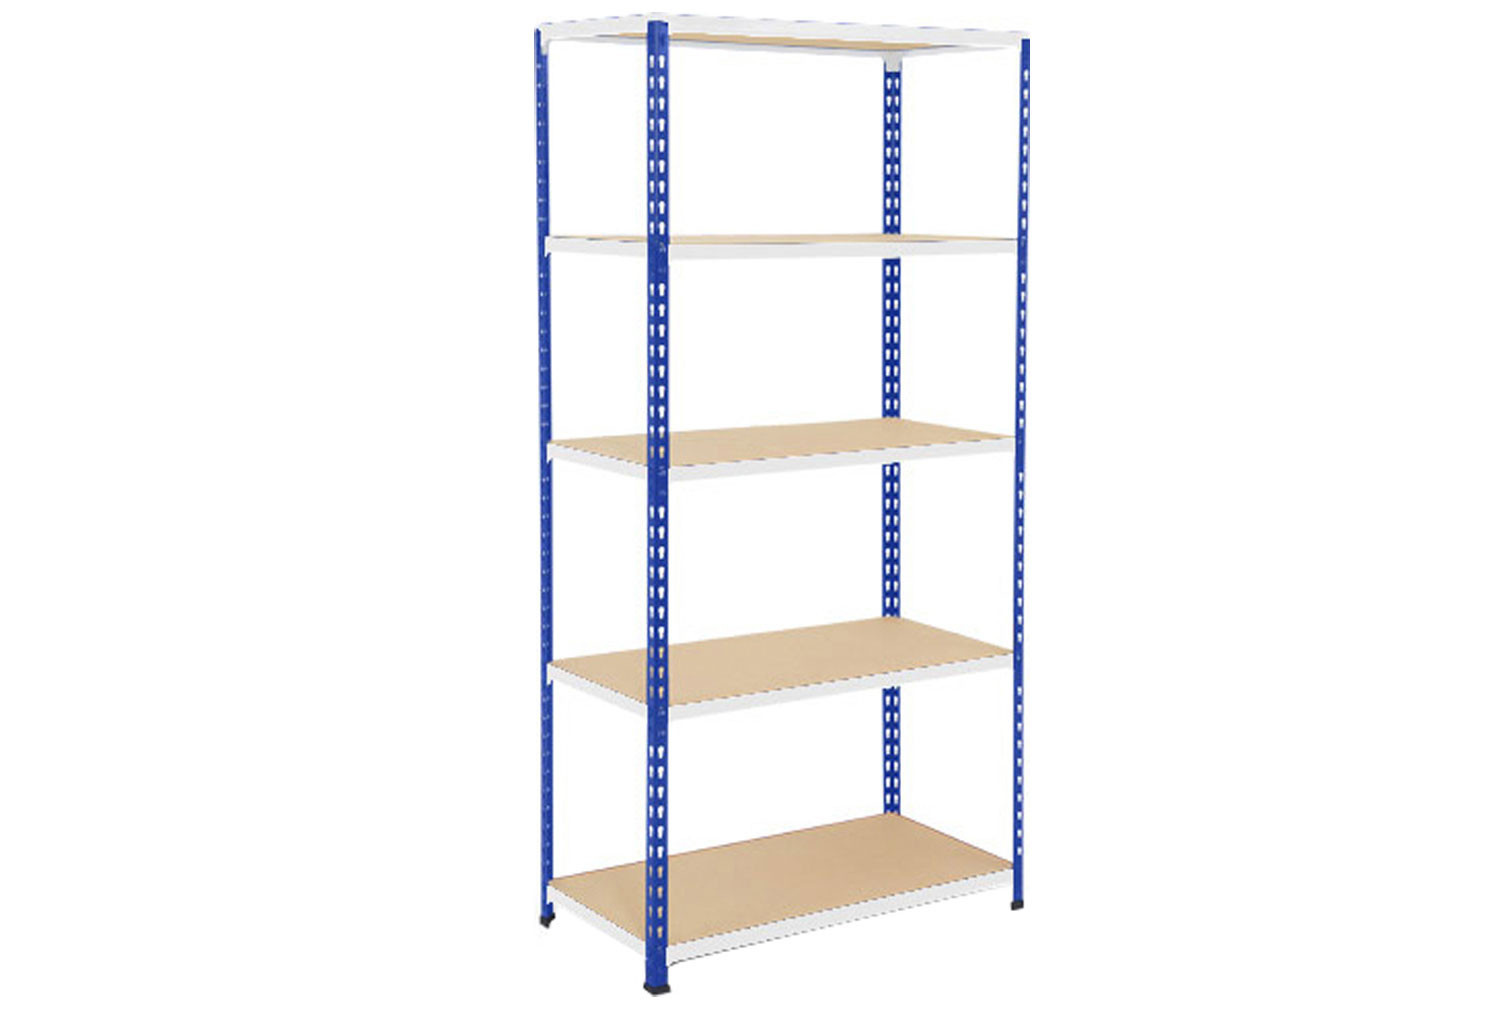 Rapid 2 Shelving With 5 Chipboard Shelves 915wx1600h (Blue/Grey)